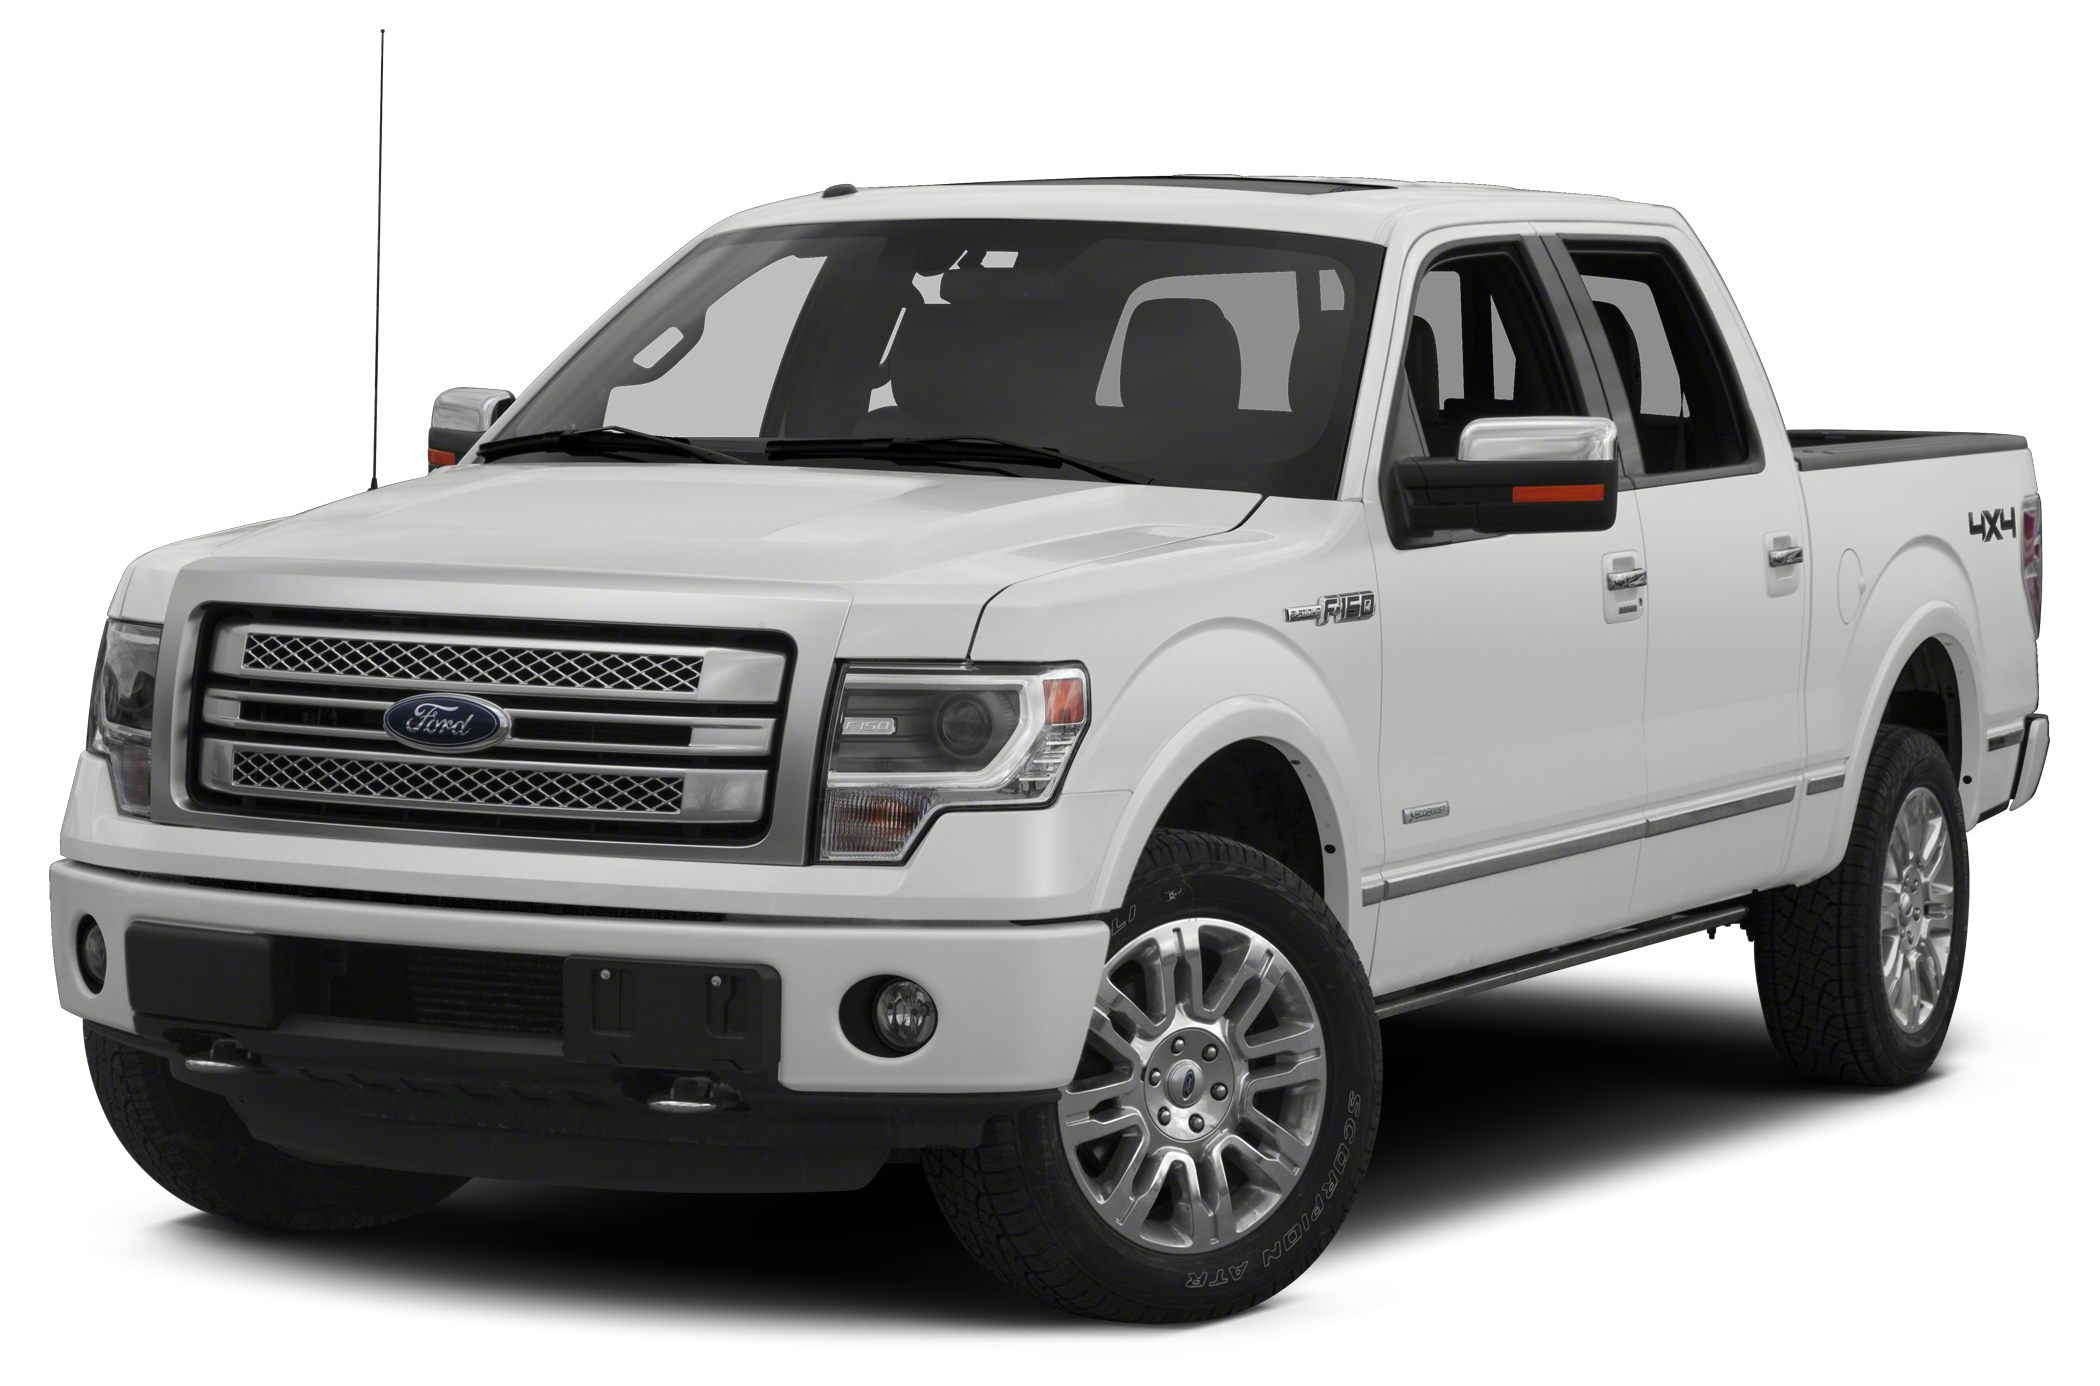 2014 Ford F150 Platinum Crew Cab Pickup for sale in Chantilly for $42,220 with 0 miles.